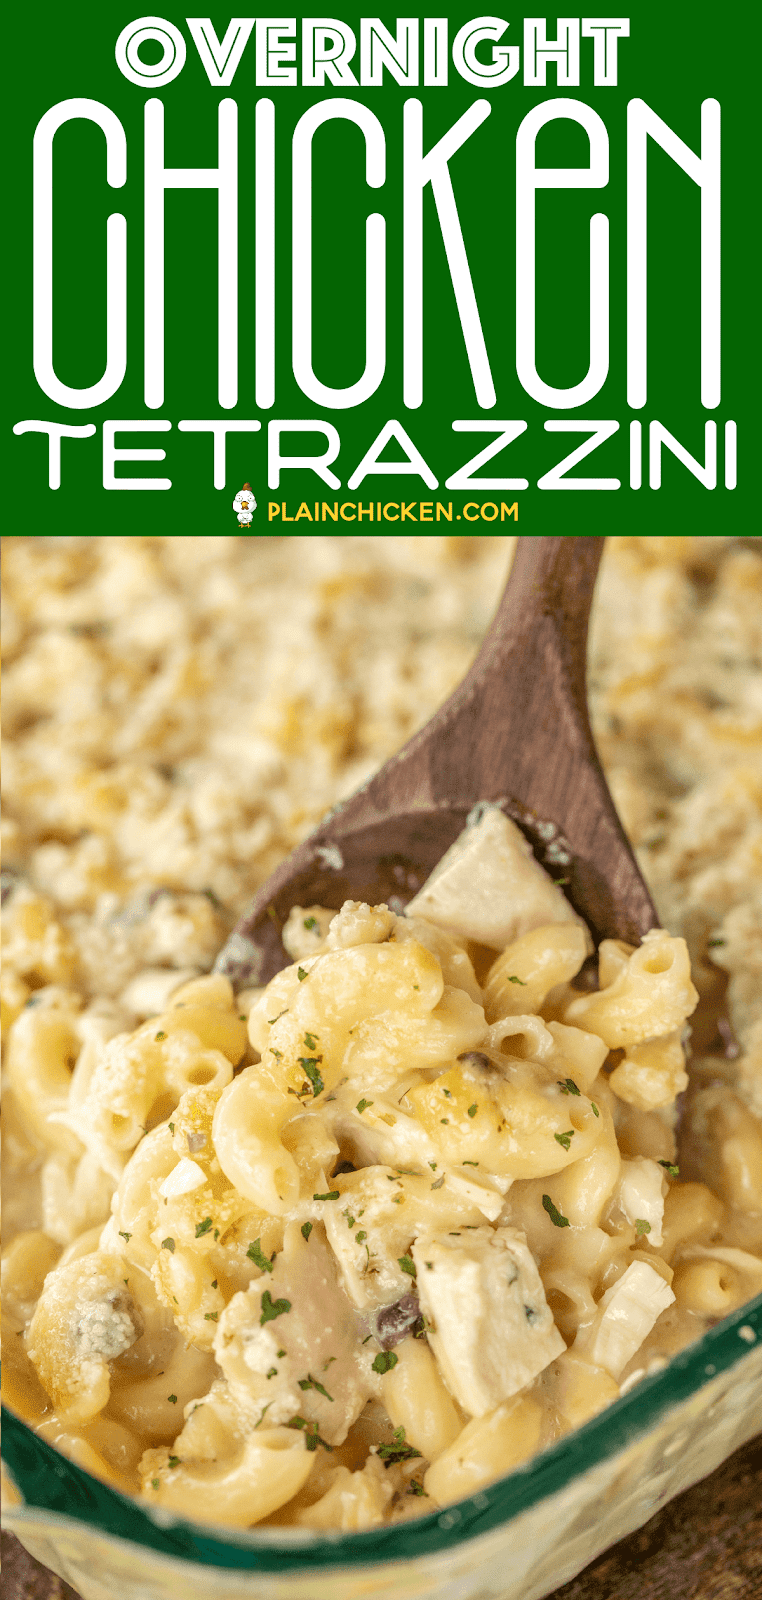 Overnight Chicken Tetrazzini - a new family favorite! It is on repeat in our house! Just dump everything in the casserole dish and refrigerate overnight. No boiling the noodles. They will soften overnight and be cooked to perfection in the finished dish. Chicken, cream of chicken, cream of mushroom, milk, chicken broth, onion, garlic, elbow macaroni and parmesan cheese. Use a rotisserie chicken for quick prep. #casserole #chicken #kidfriendly #noboil